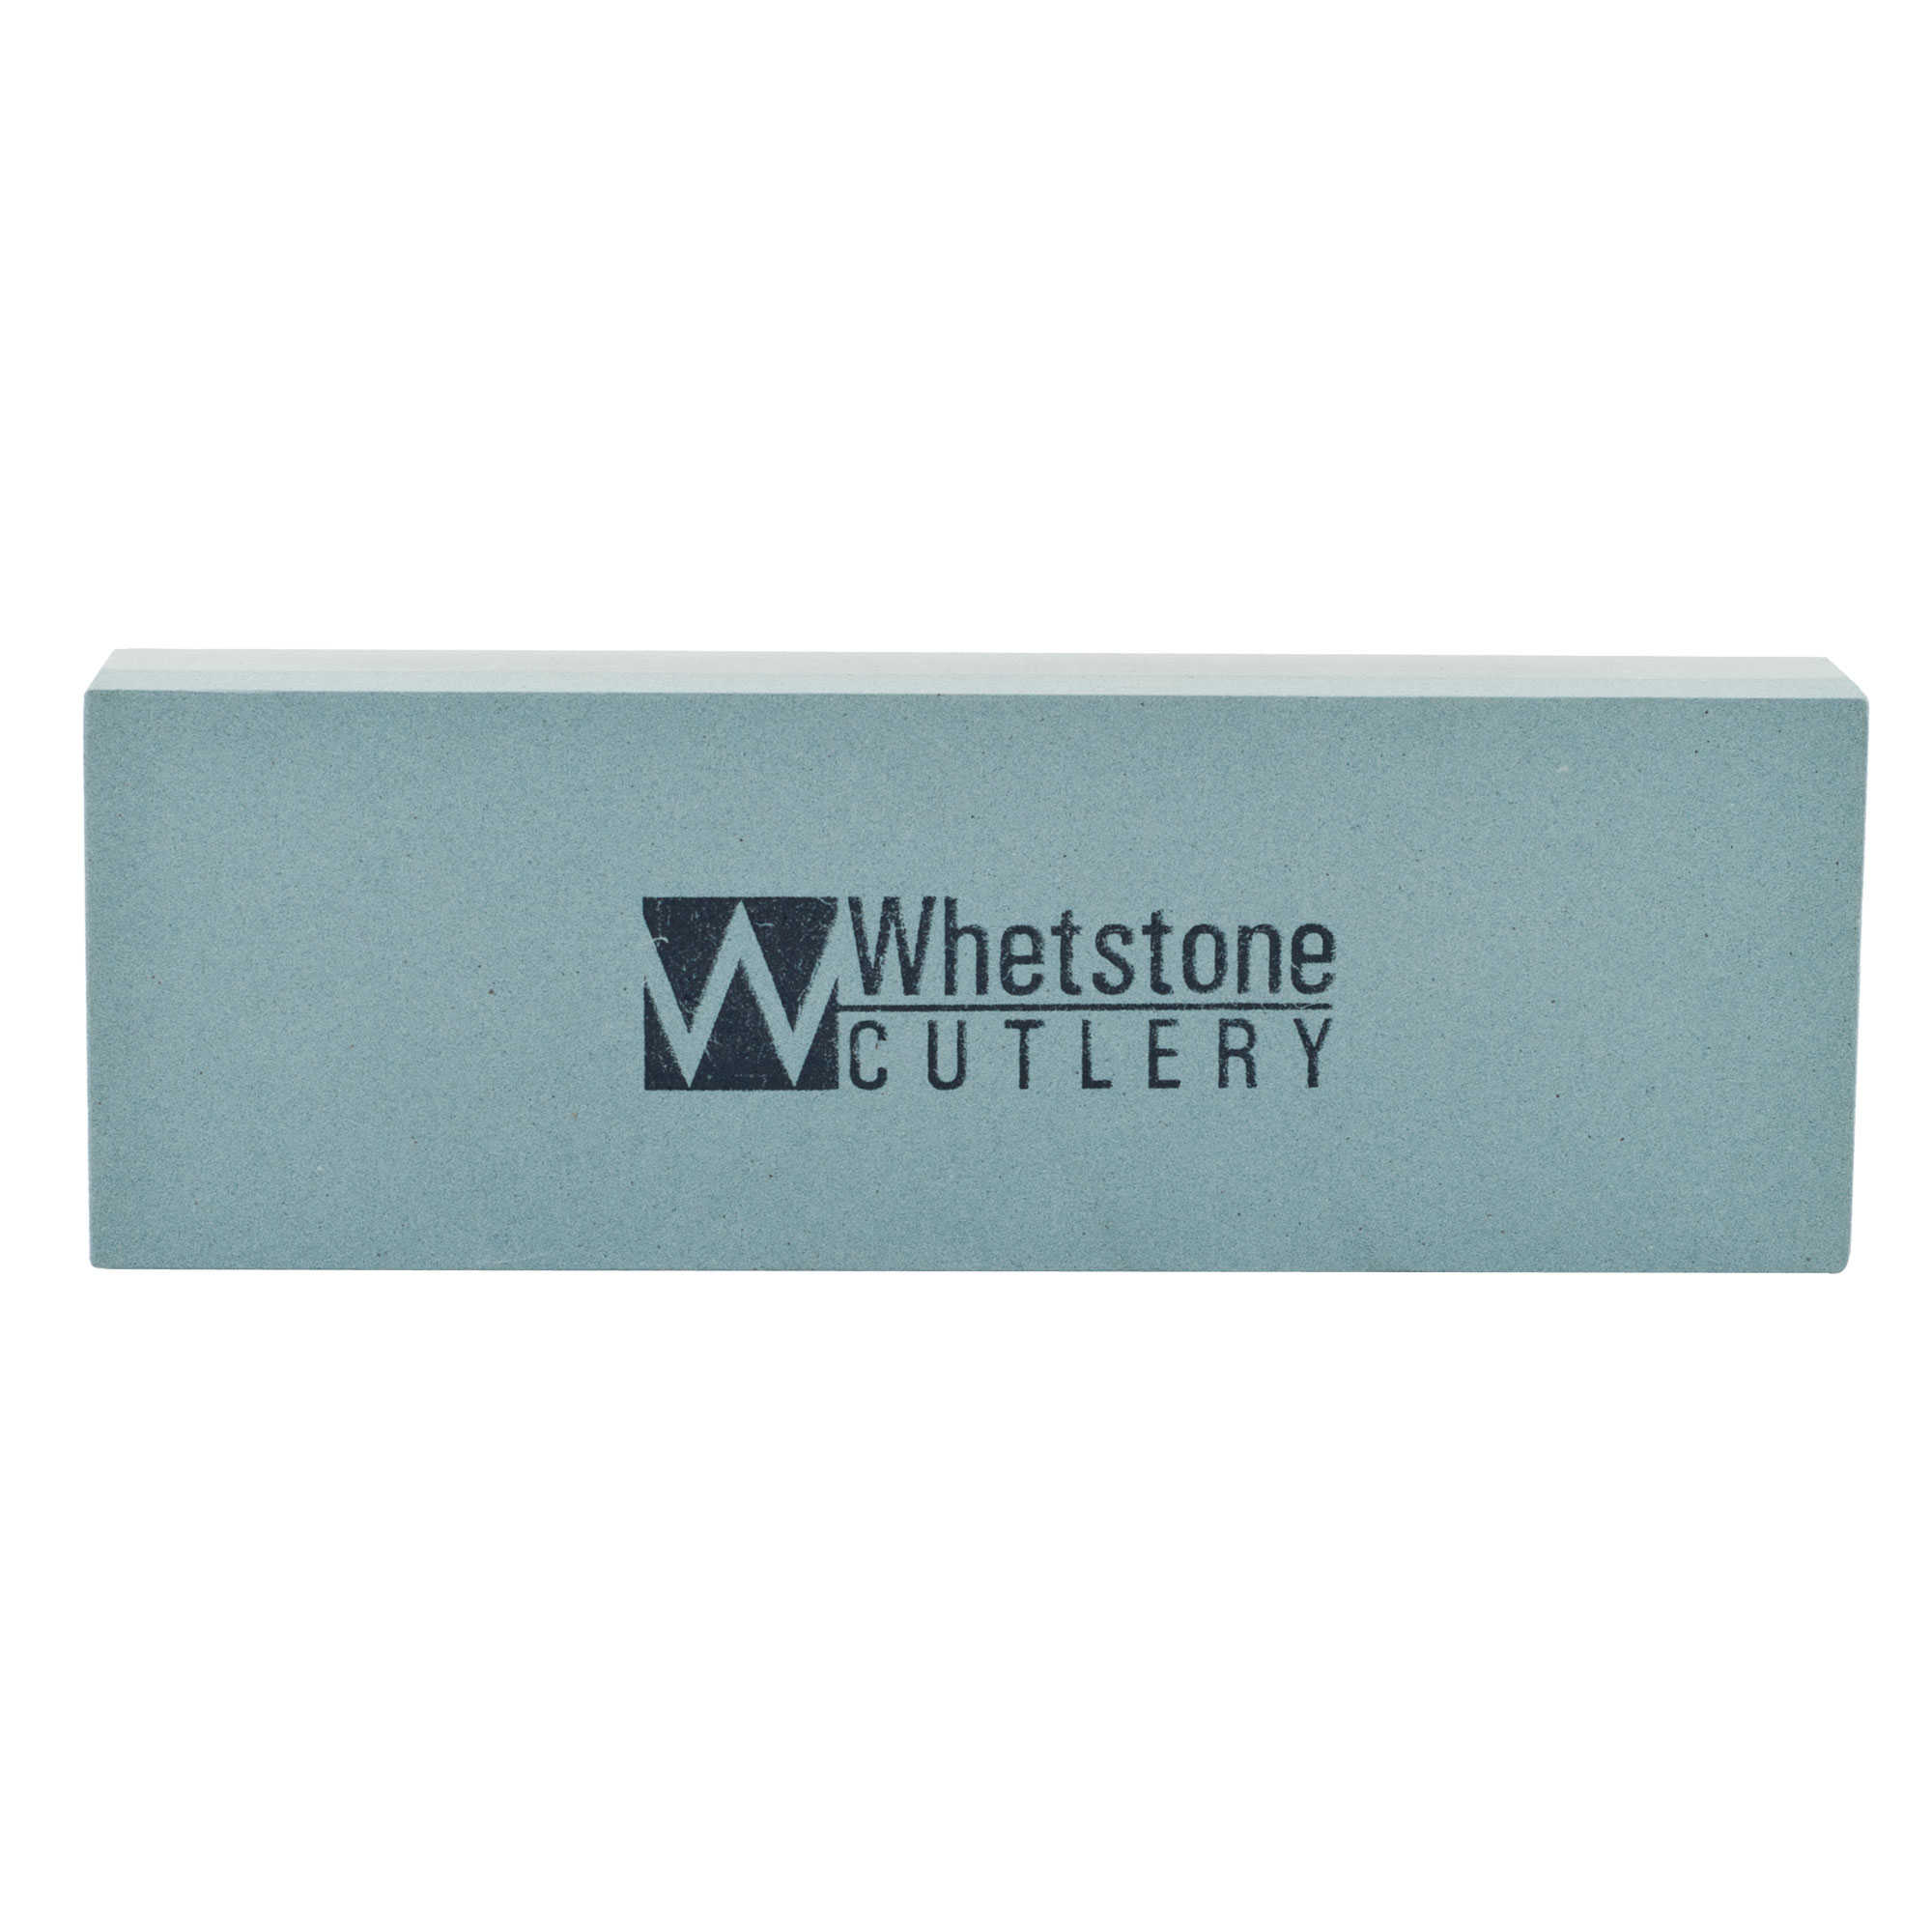 Two-sided Blade, Knife Sharpening Stone by Whetstone Cutlery